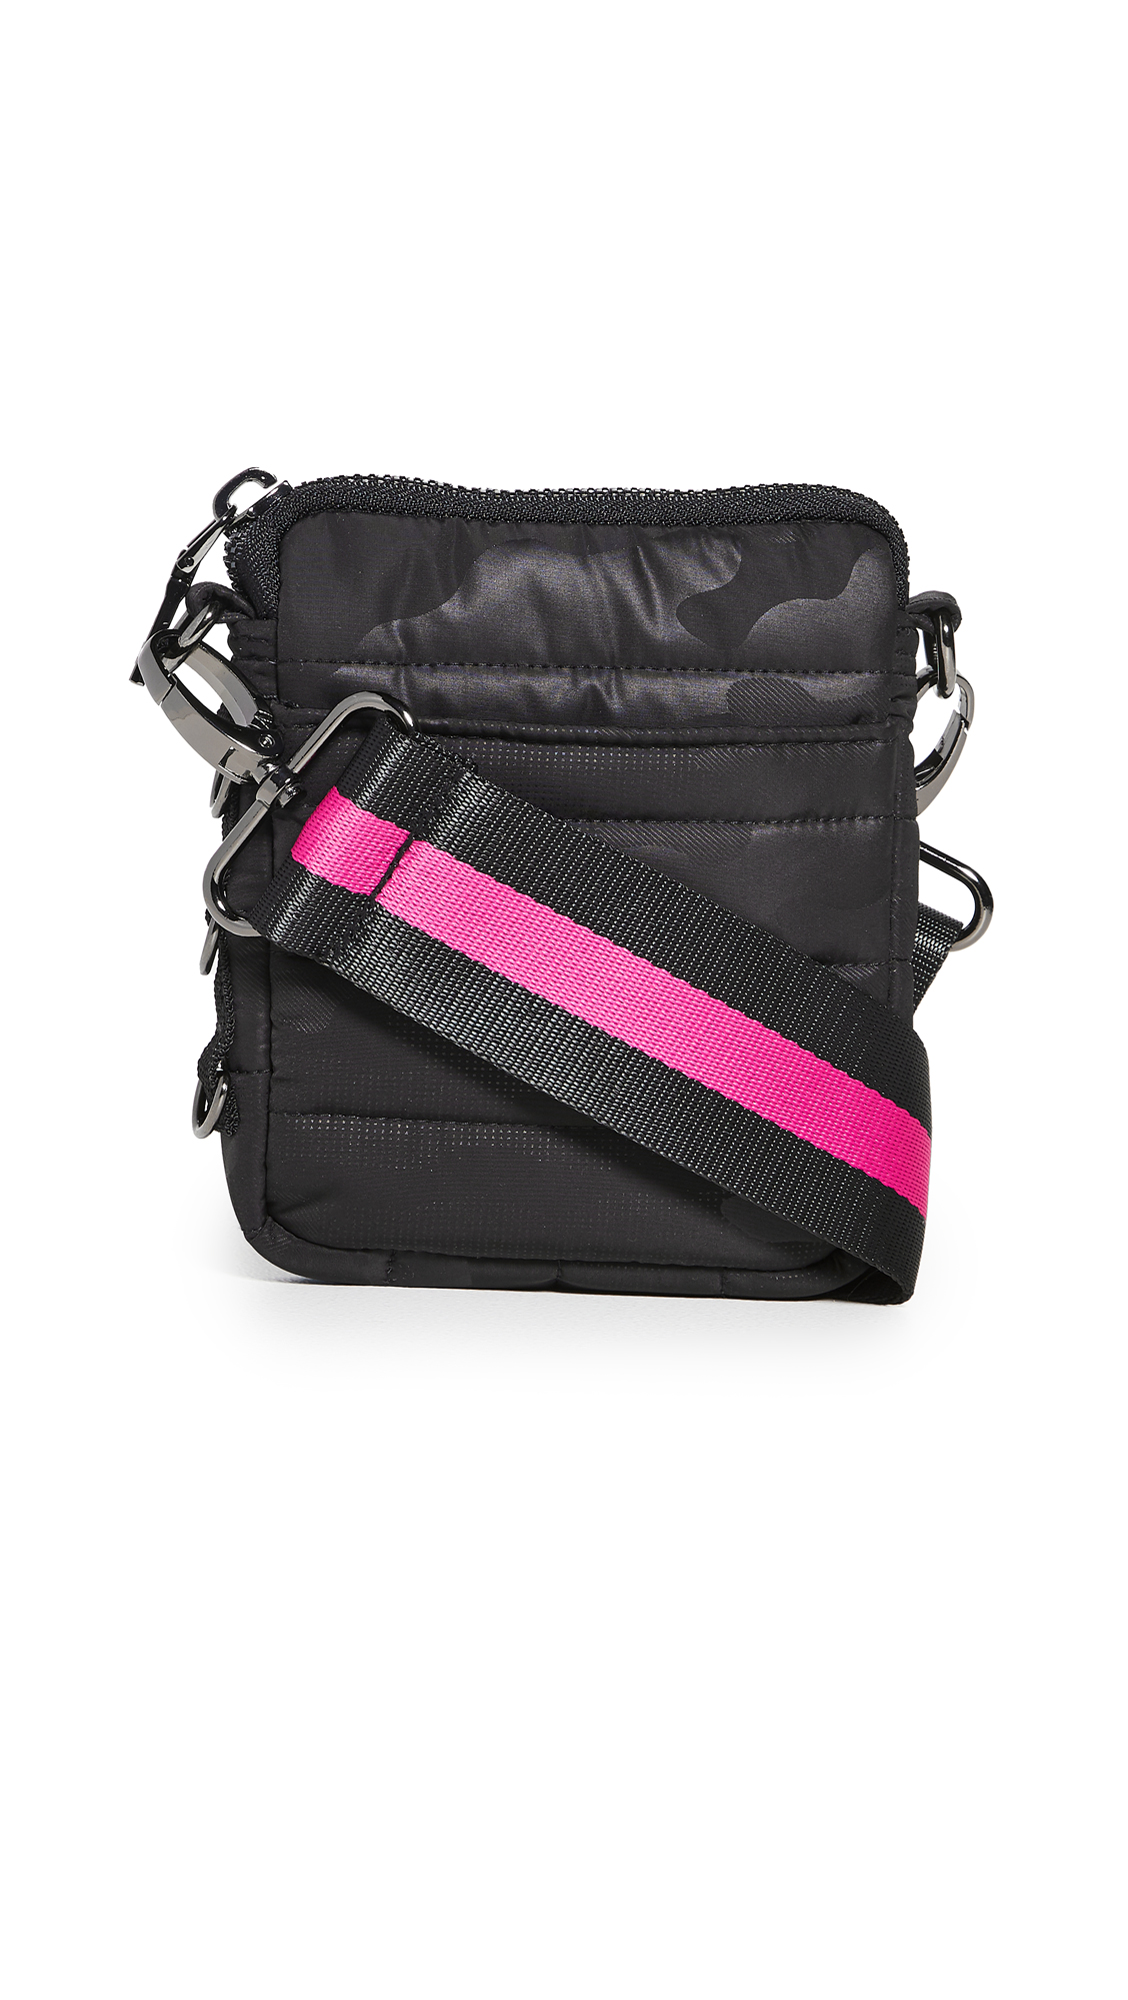 Think Royln Crossbody Phone Case With 2 Straps